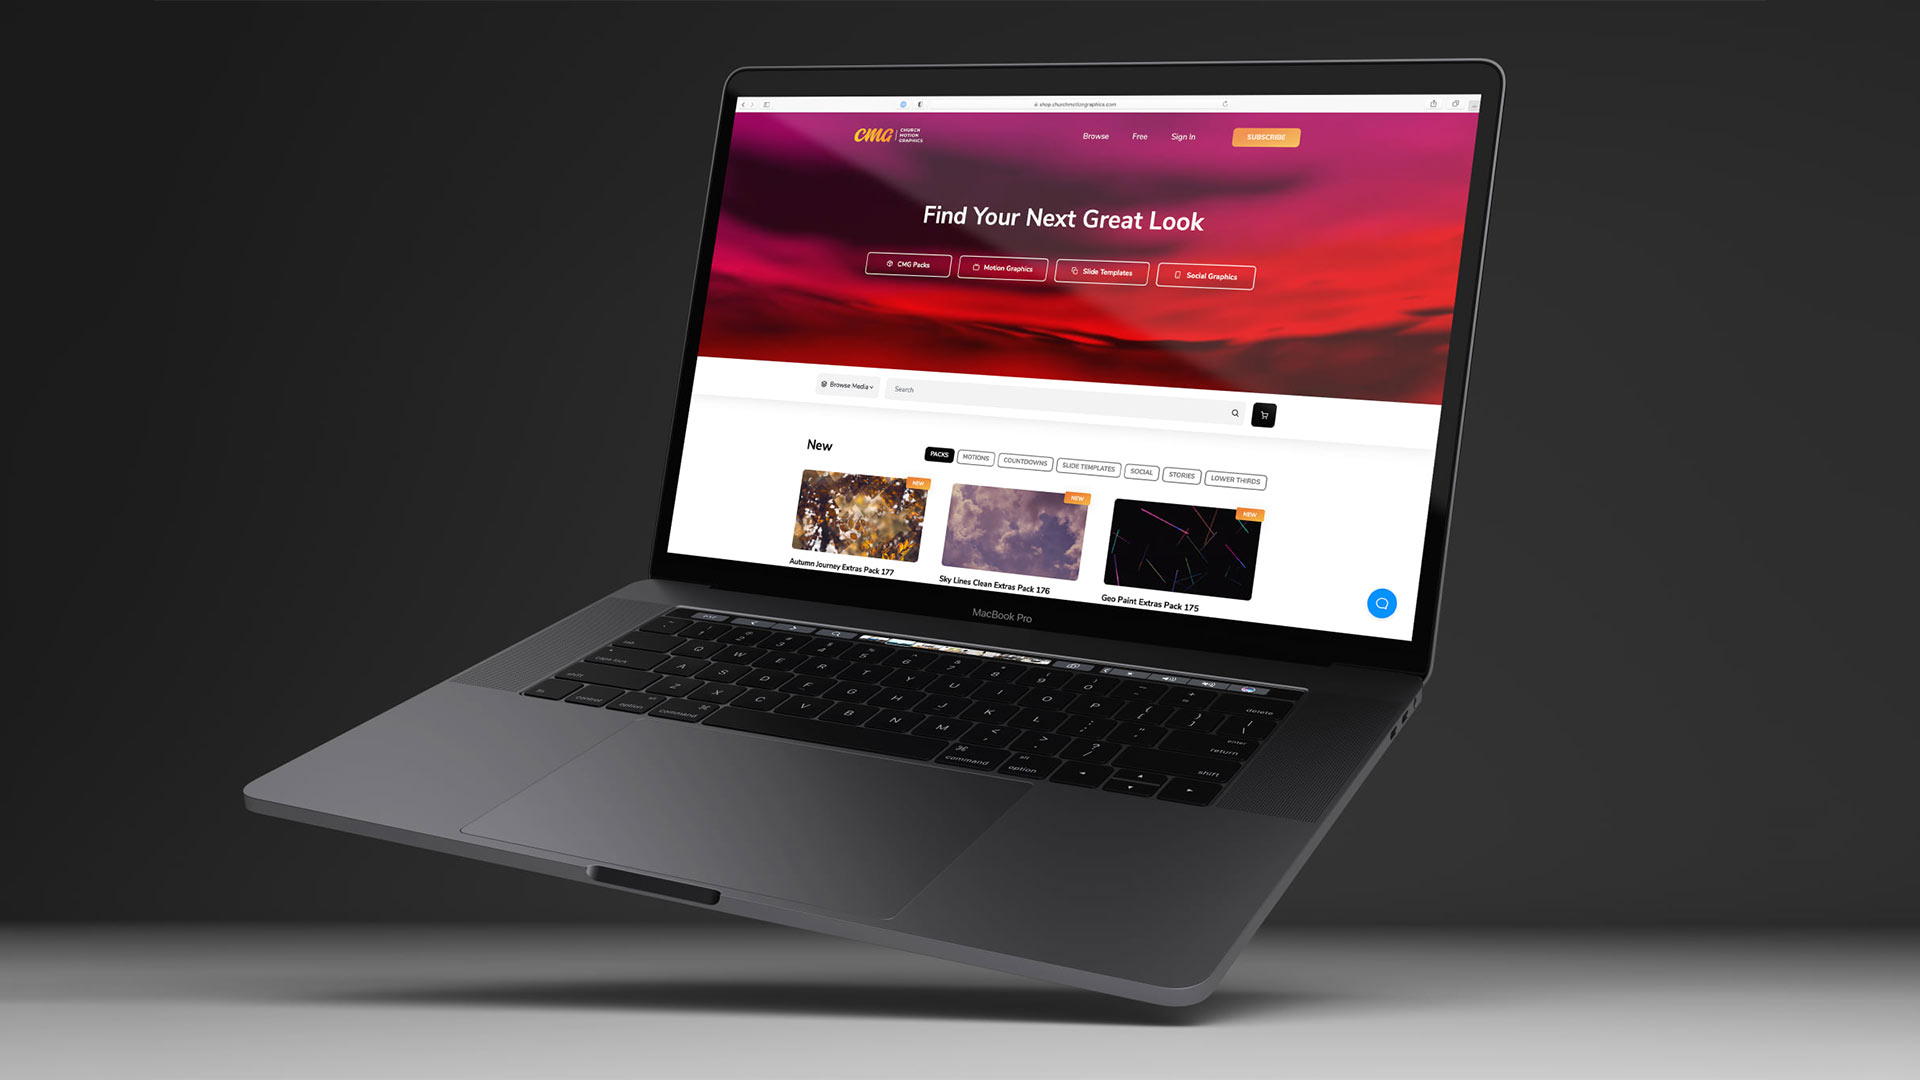 Introducing The New CMG Media Browser